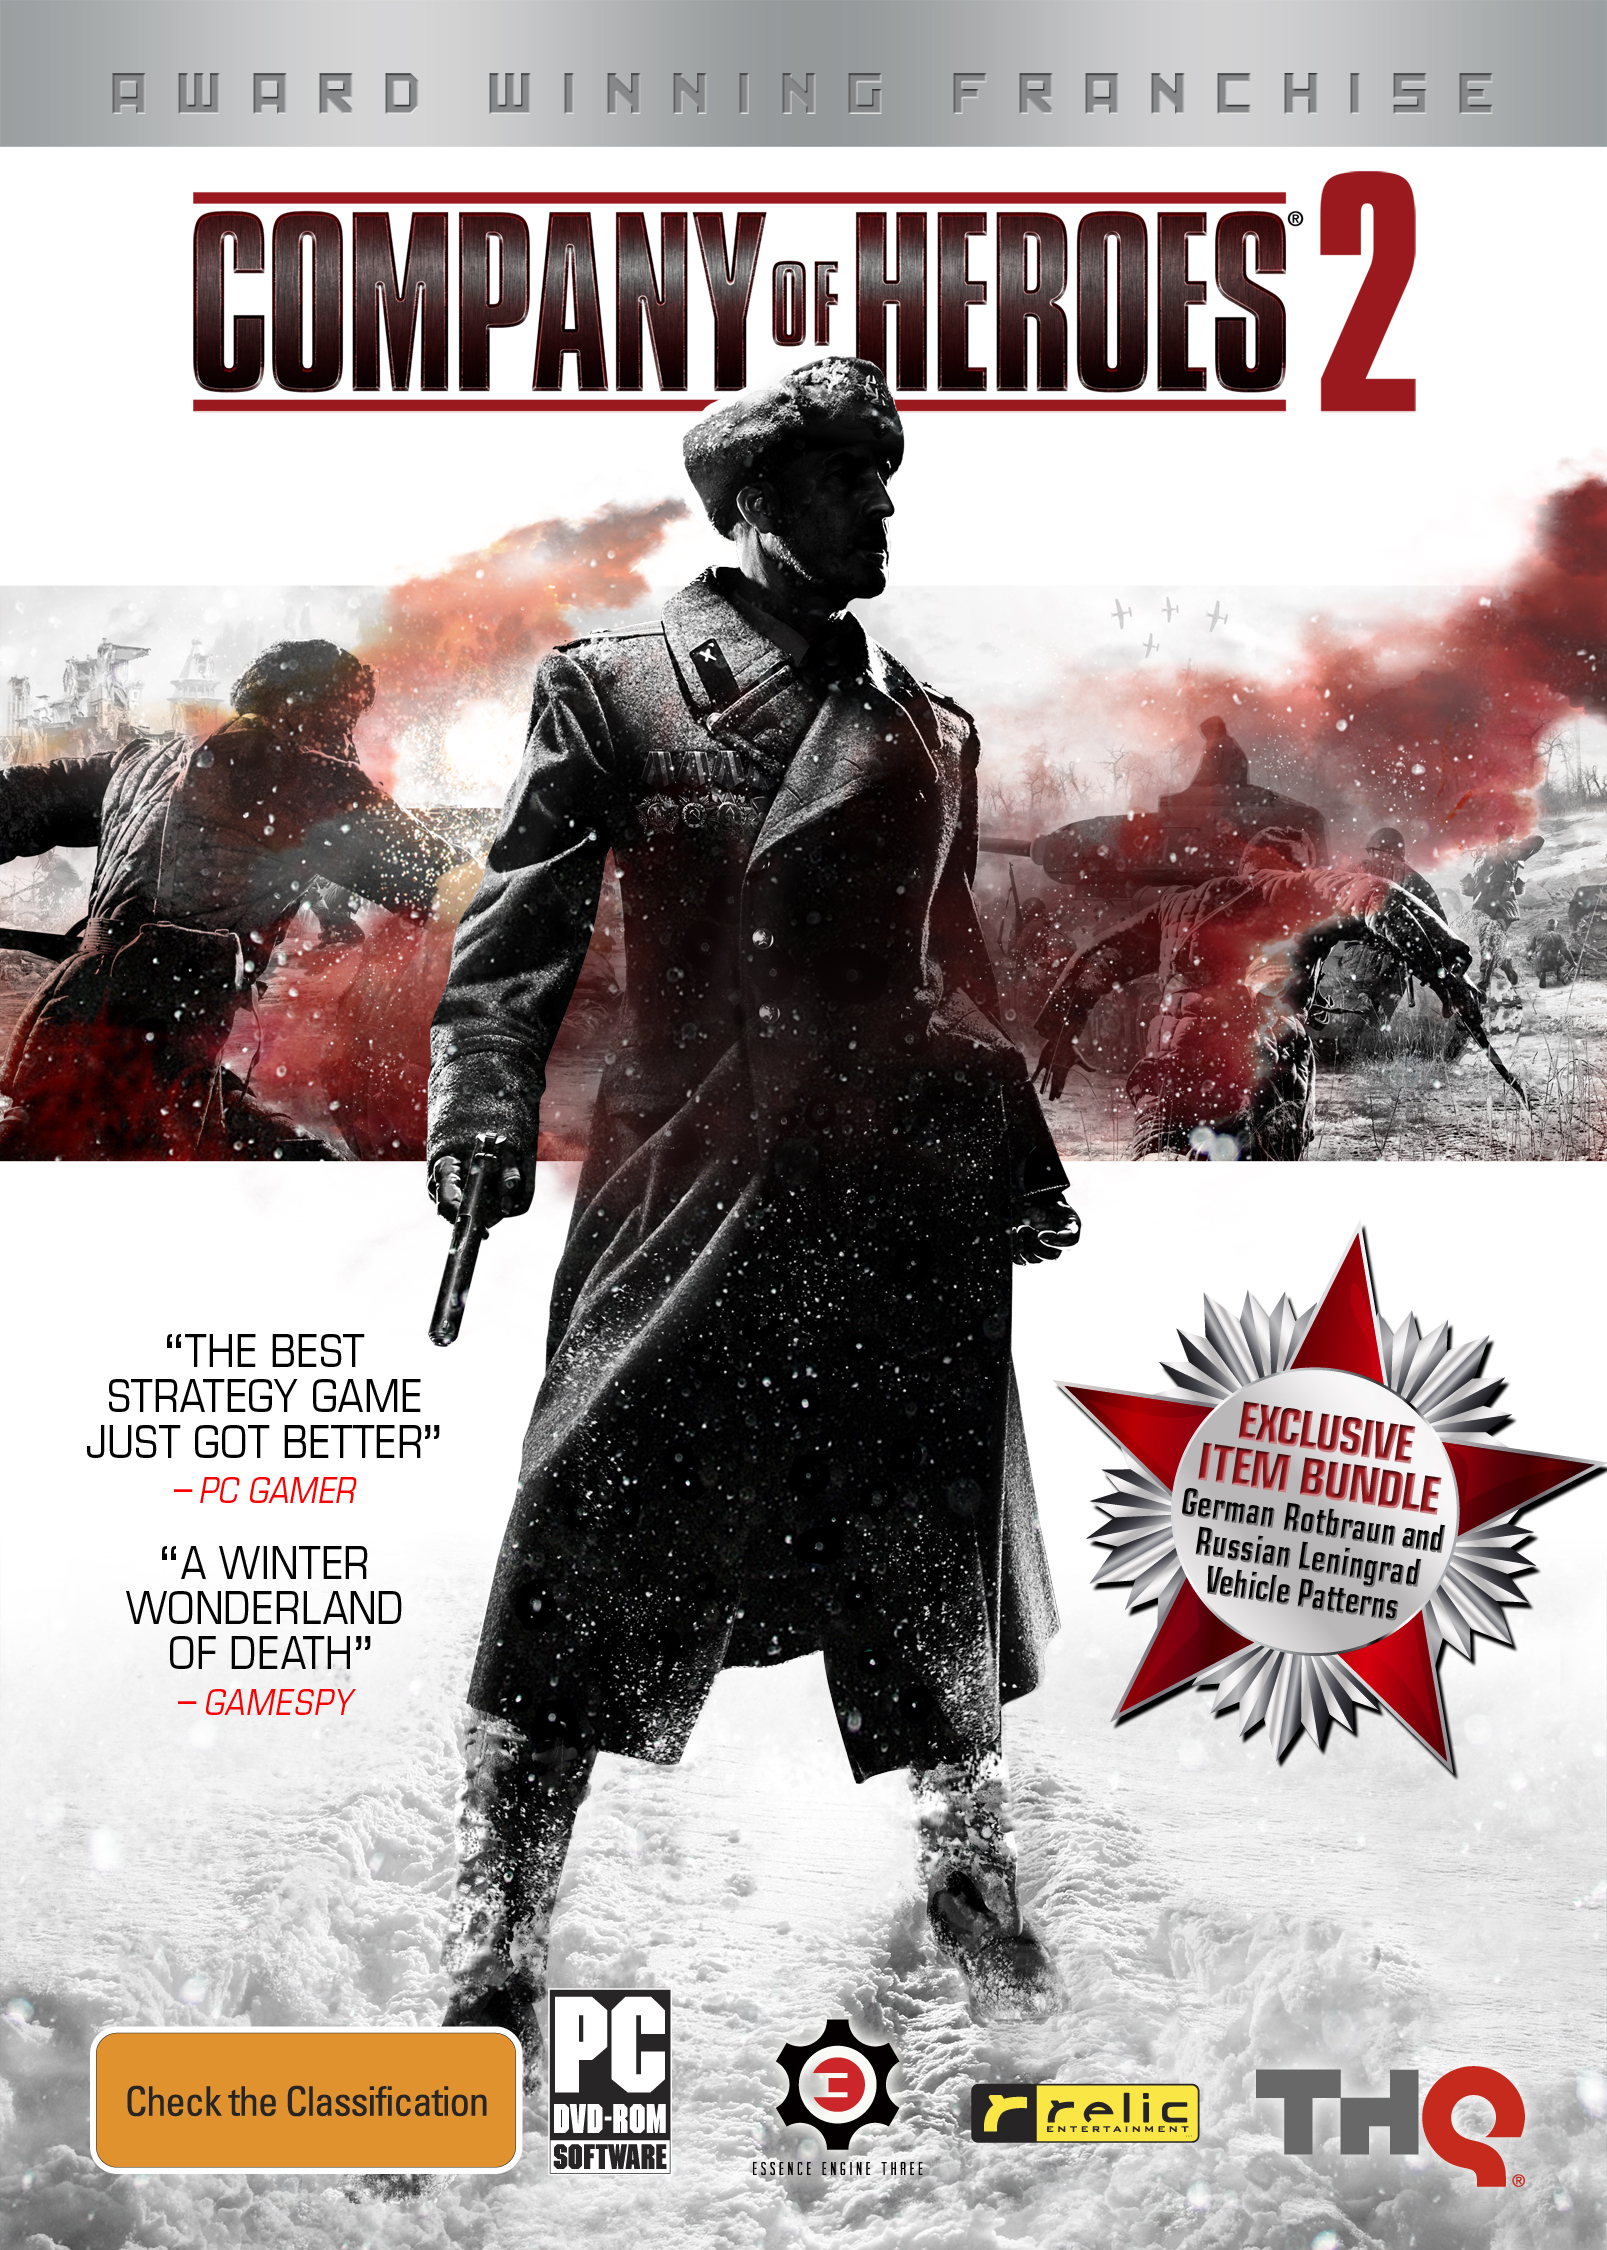 http://images3.wikia.nocookie.net/__cb20121004004203/companyofheroes/en/images/4/4f/CoH2_initial_box_art.jpg